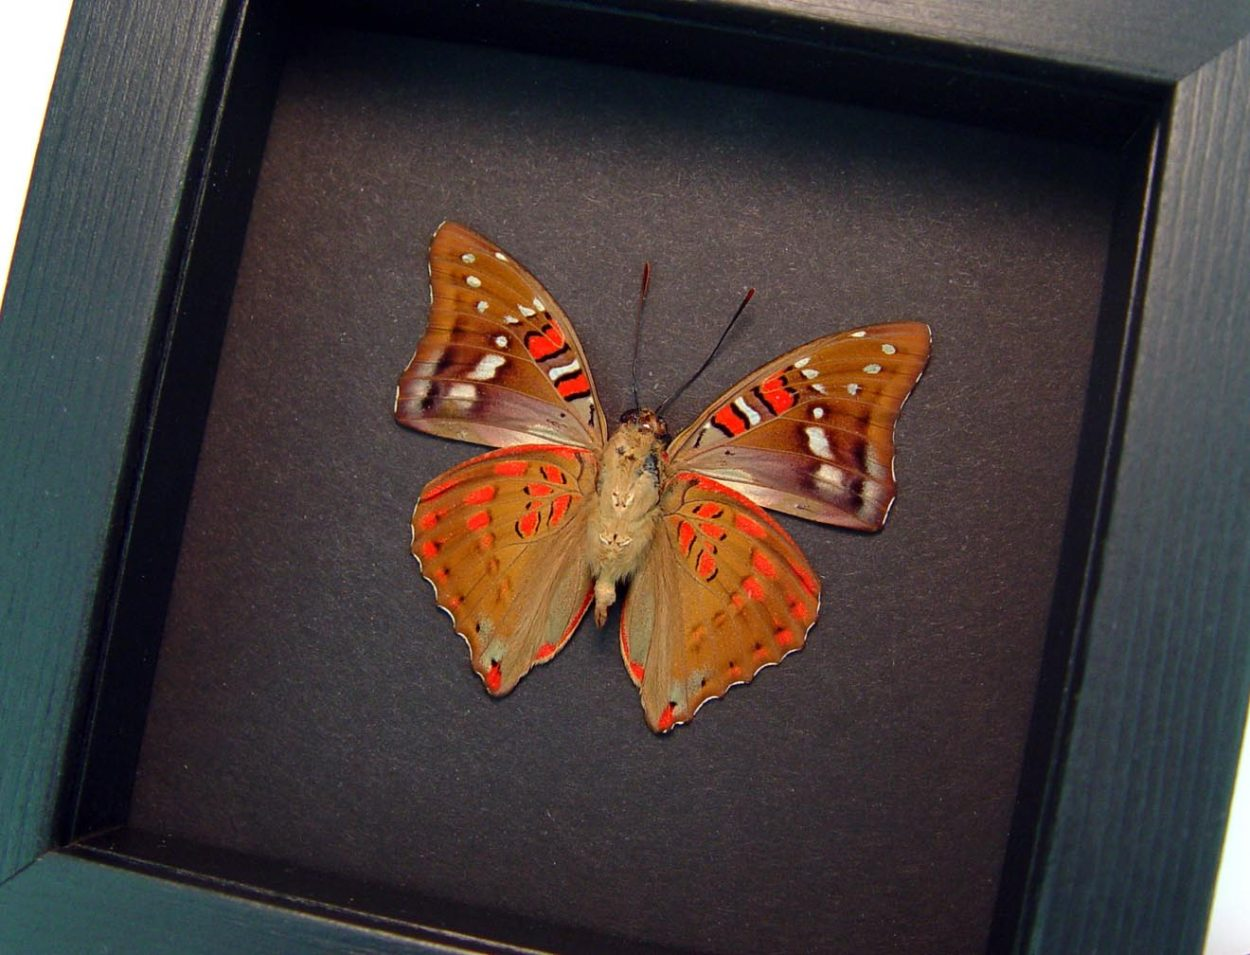 Euthalia malaccana Verso Red Framed Butterfly Fruhstorfer's baron Moonlight Display ooak